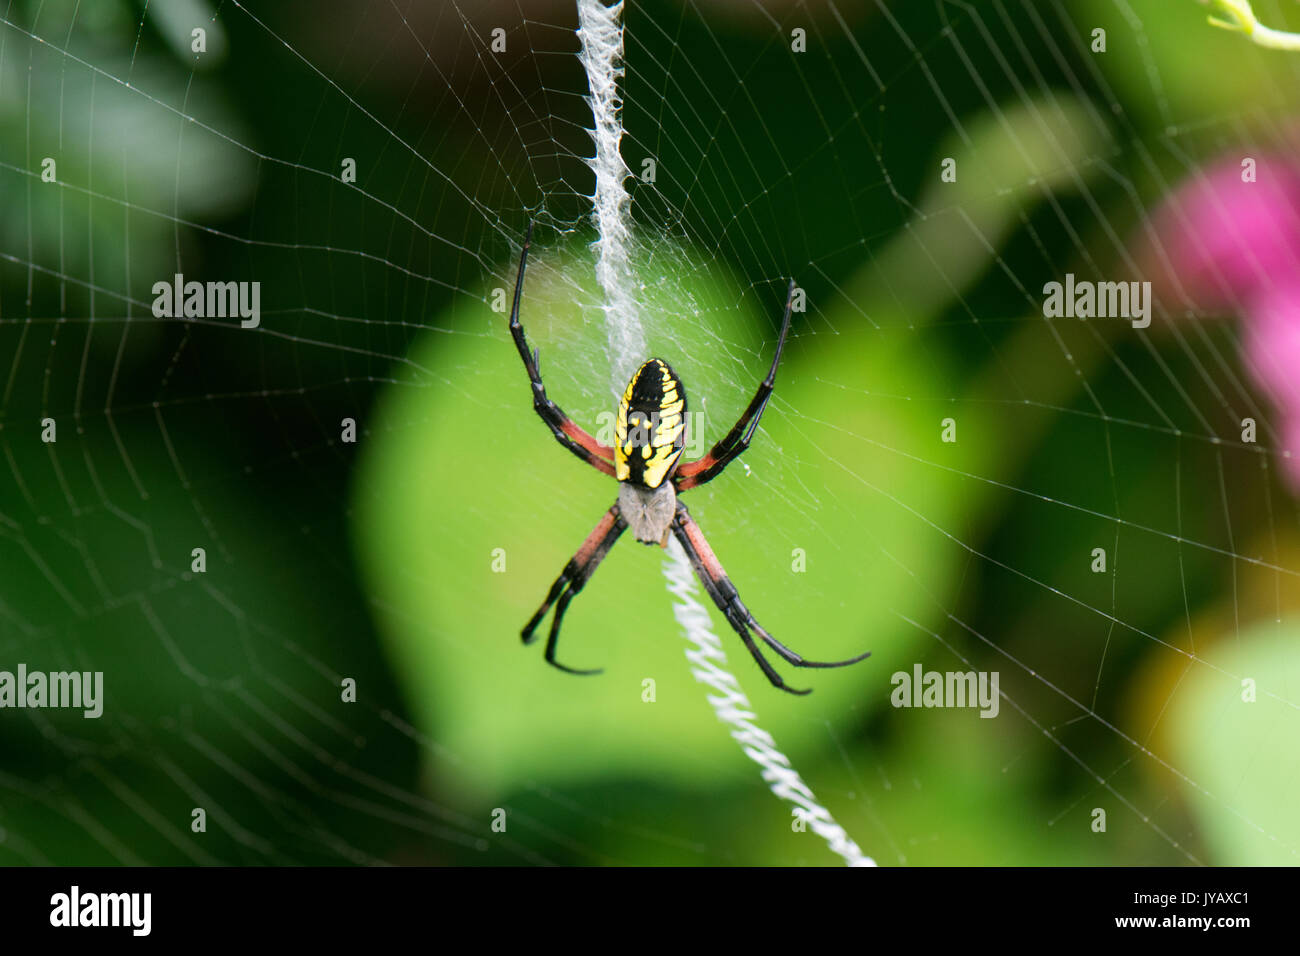 yellow garden spider hangs on web in front of brilliant green leaf Stock Photo